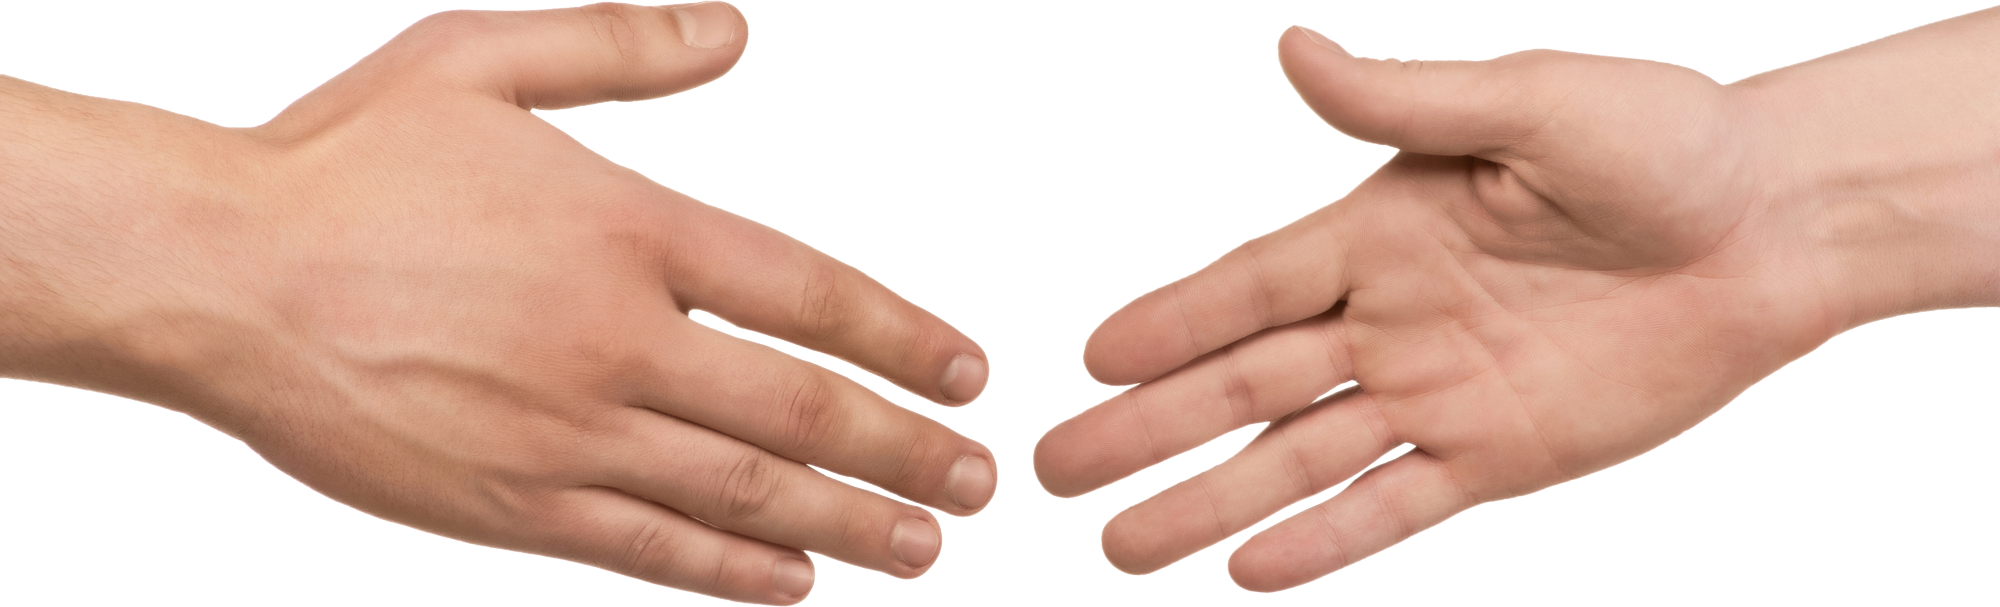 Hand png image transparent 10